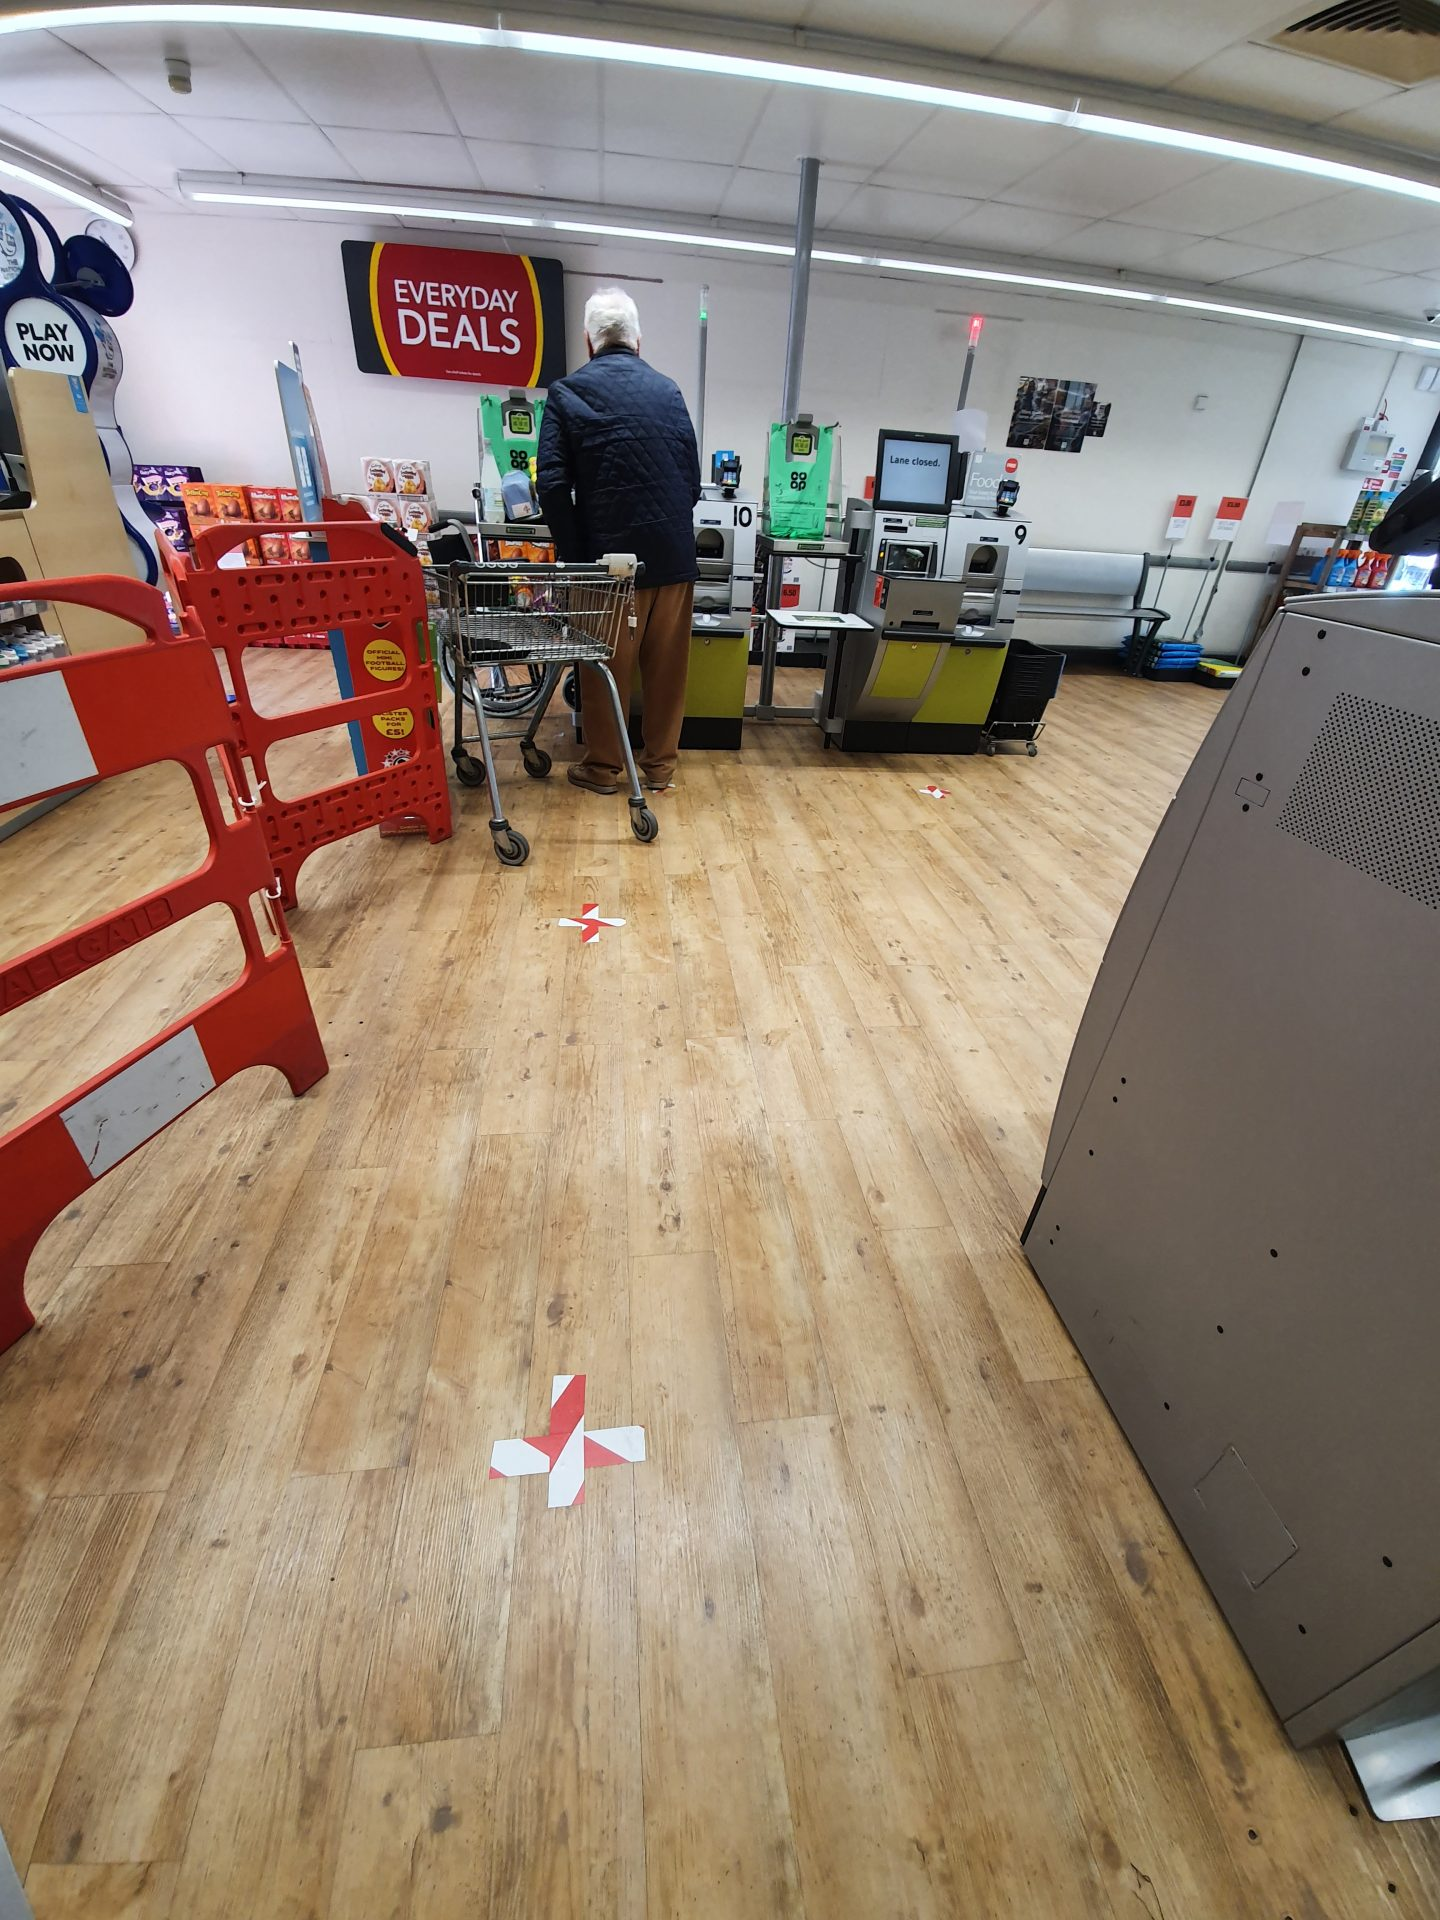 A mostly empty supermarket showing the self-adhesive tape on the floor, marking where people should stand